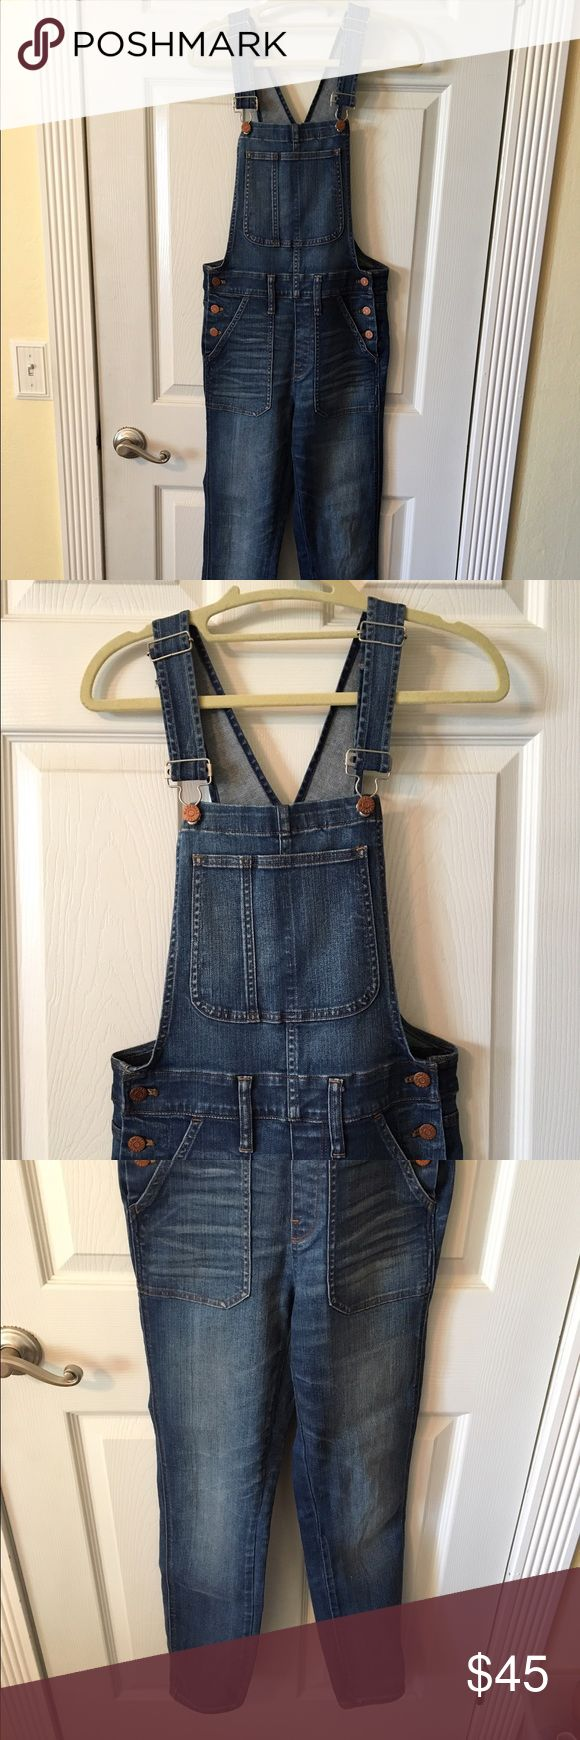 Madewell Overalls True to size for the most part. They are a tad too big for me now but anyone who is a size small/medium would fit into these. The denim is very soft which makes for a comfortable fit! Madewell Jeans Overalls